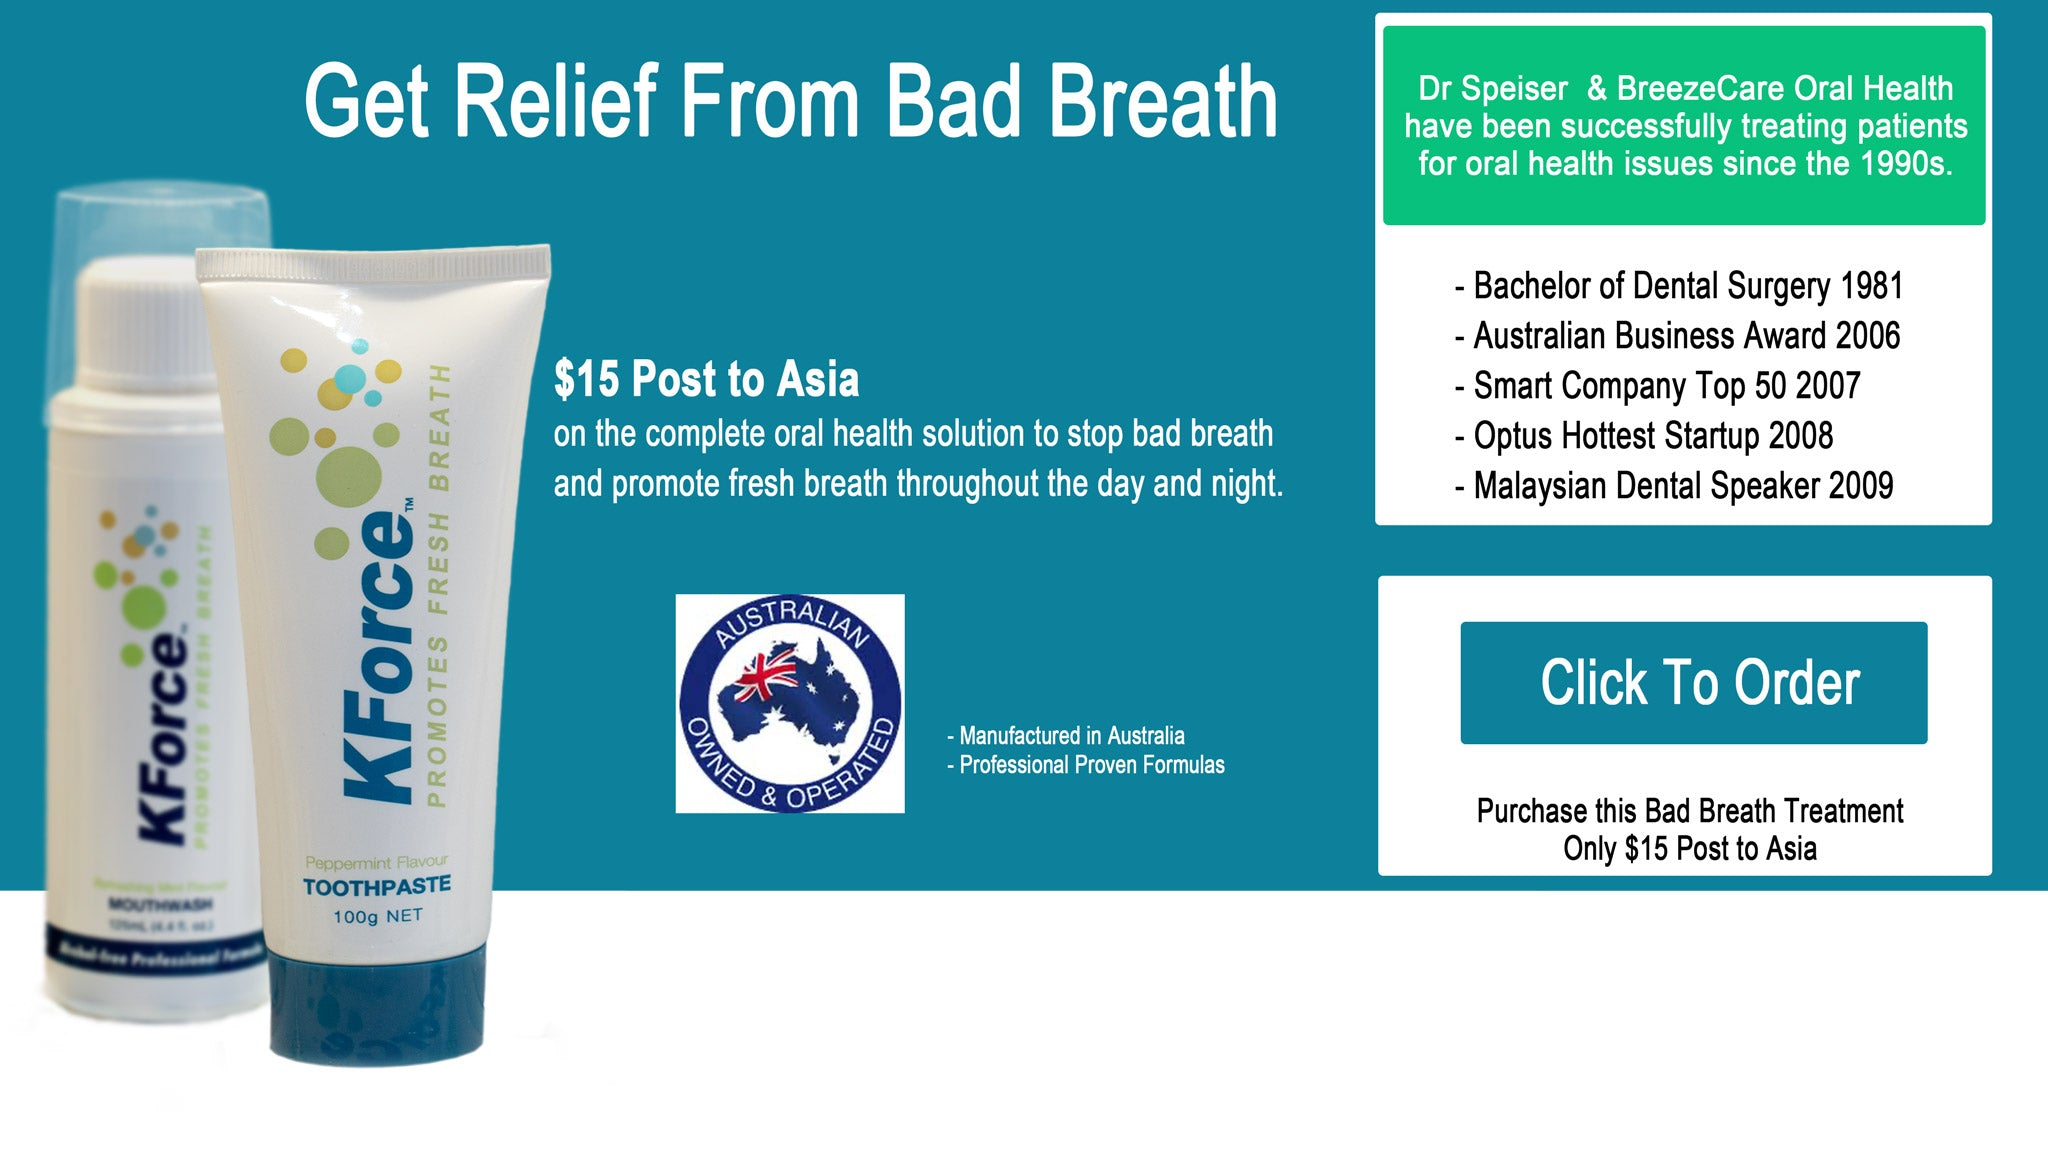 KForce Bad Breath Treatment For Asia with $15 Post